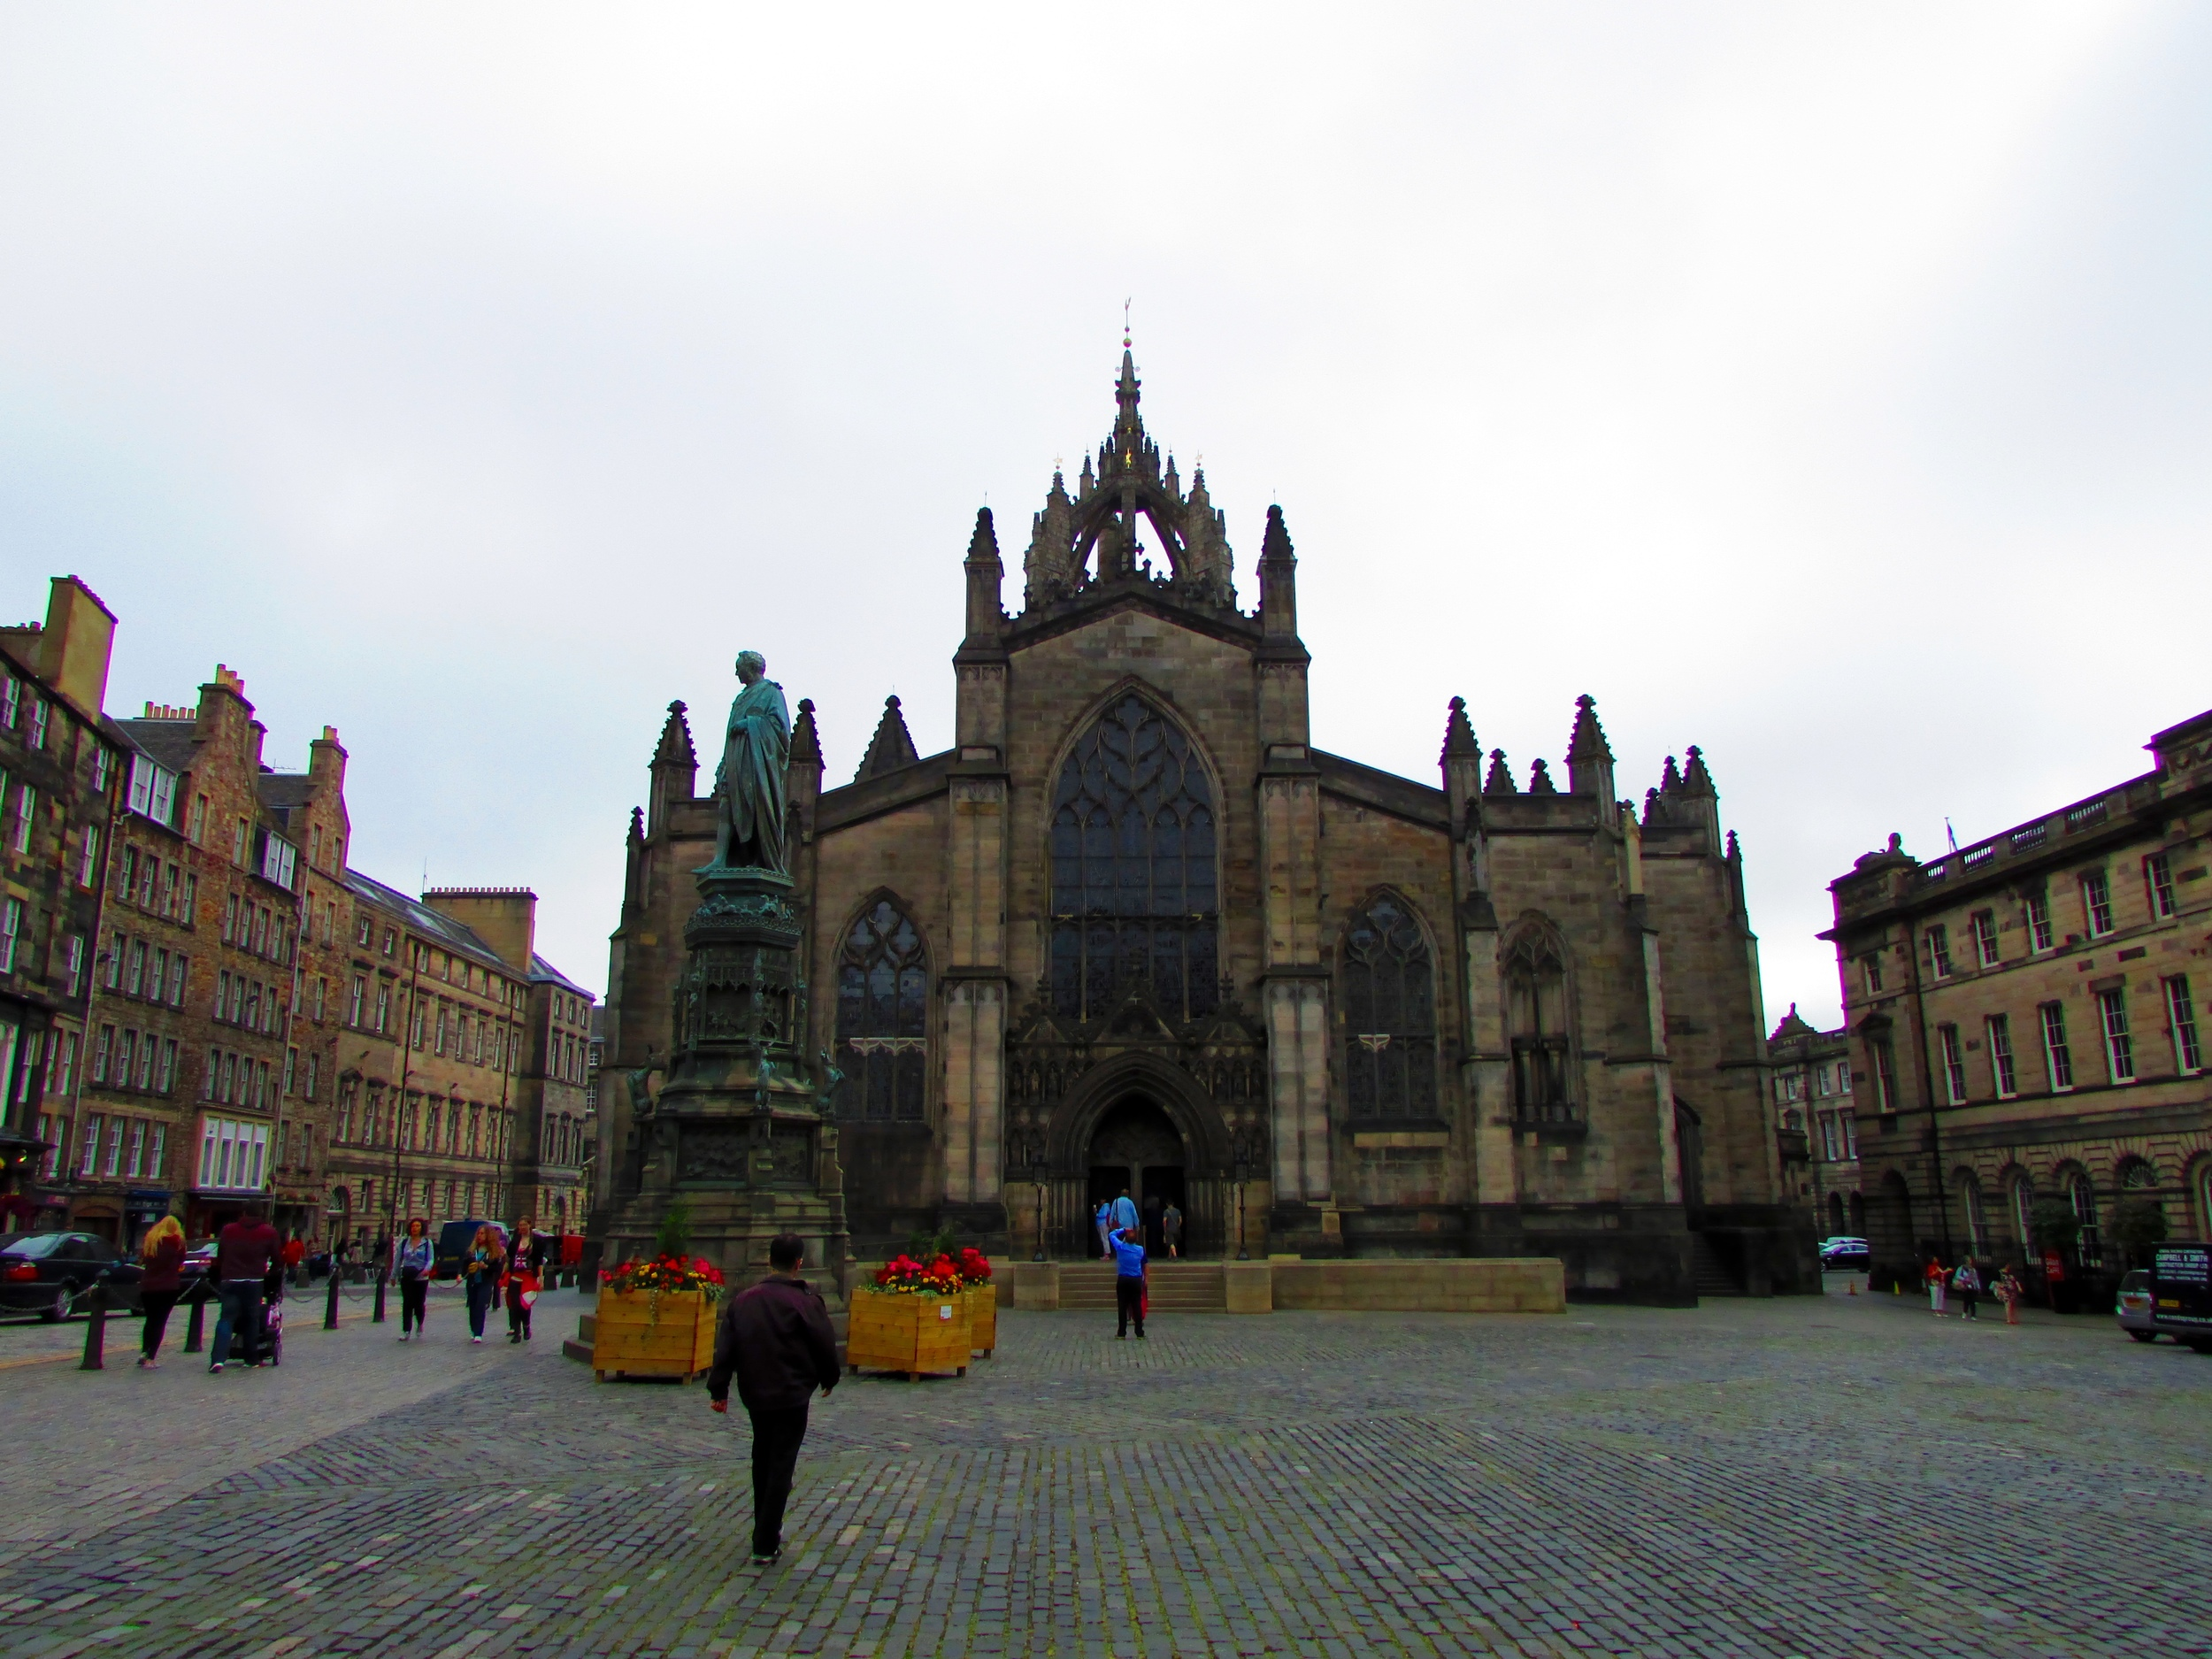 The square in front of St. Giles Cathedral was once where executions were carried out